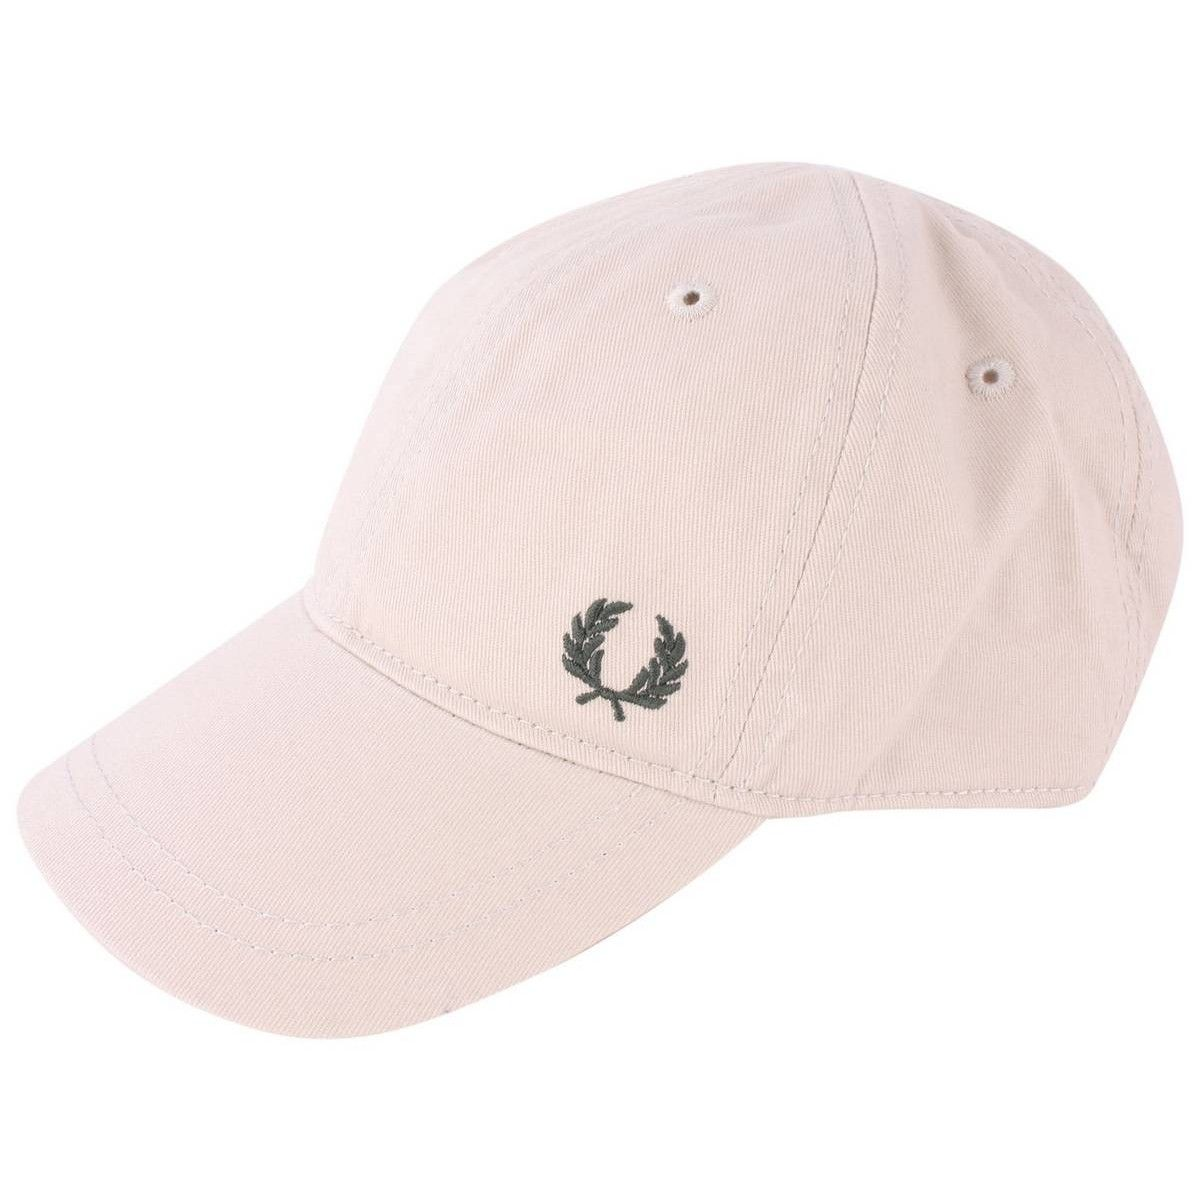 Fred Perry Classic Cap - Stone Hunting Green  b7f404a1f9c